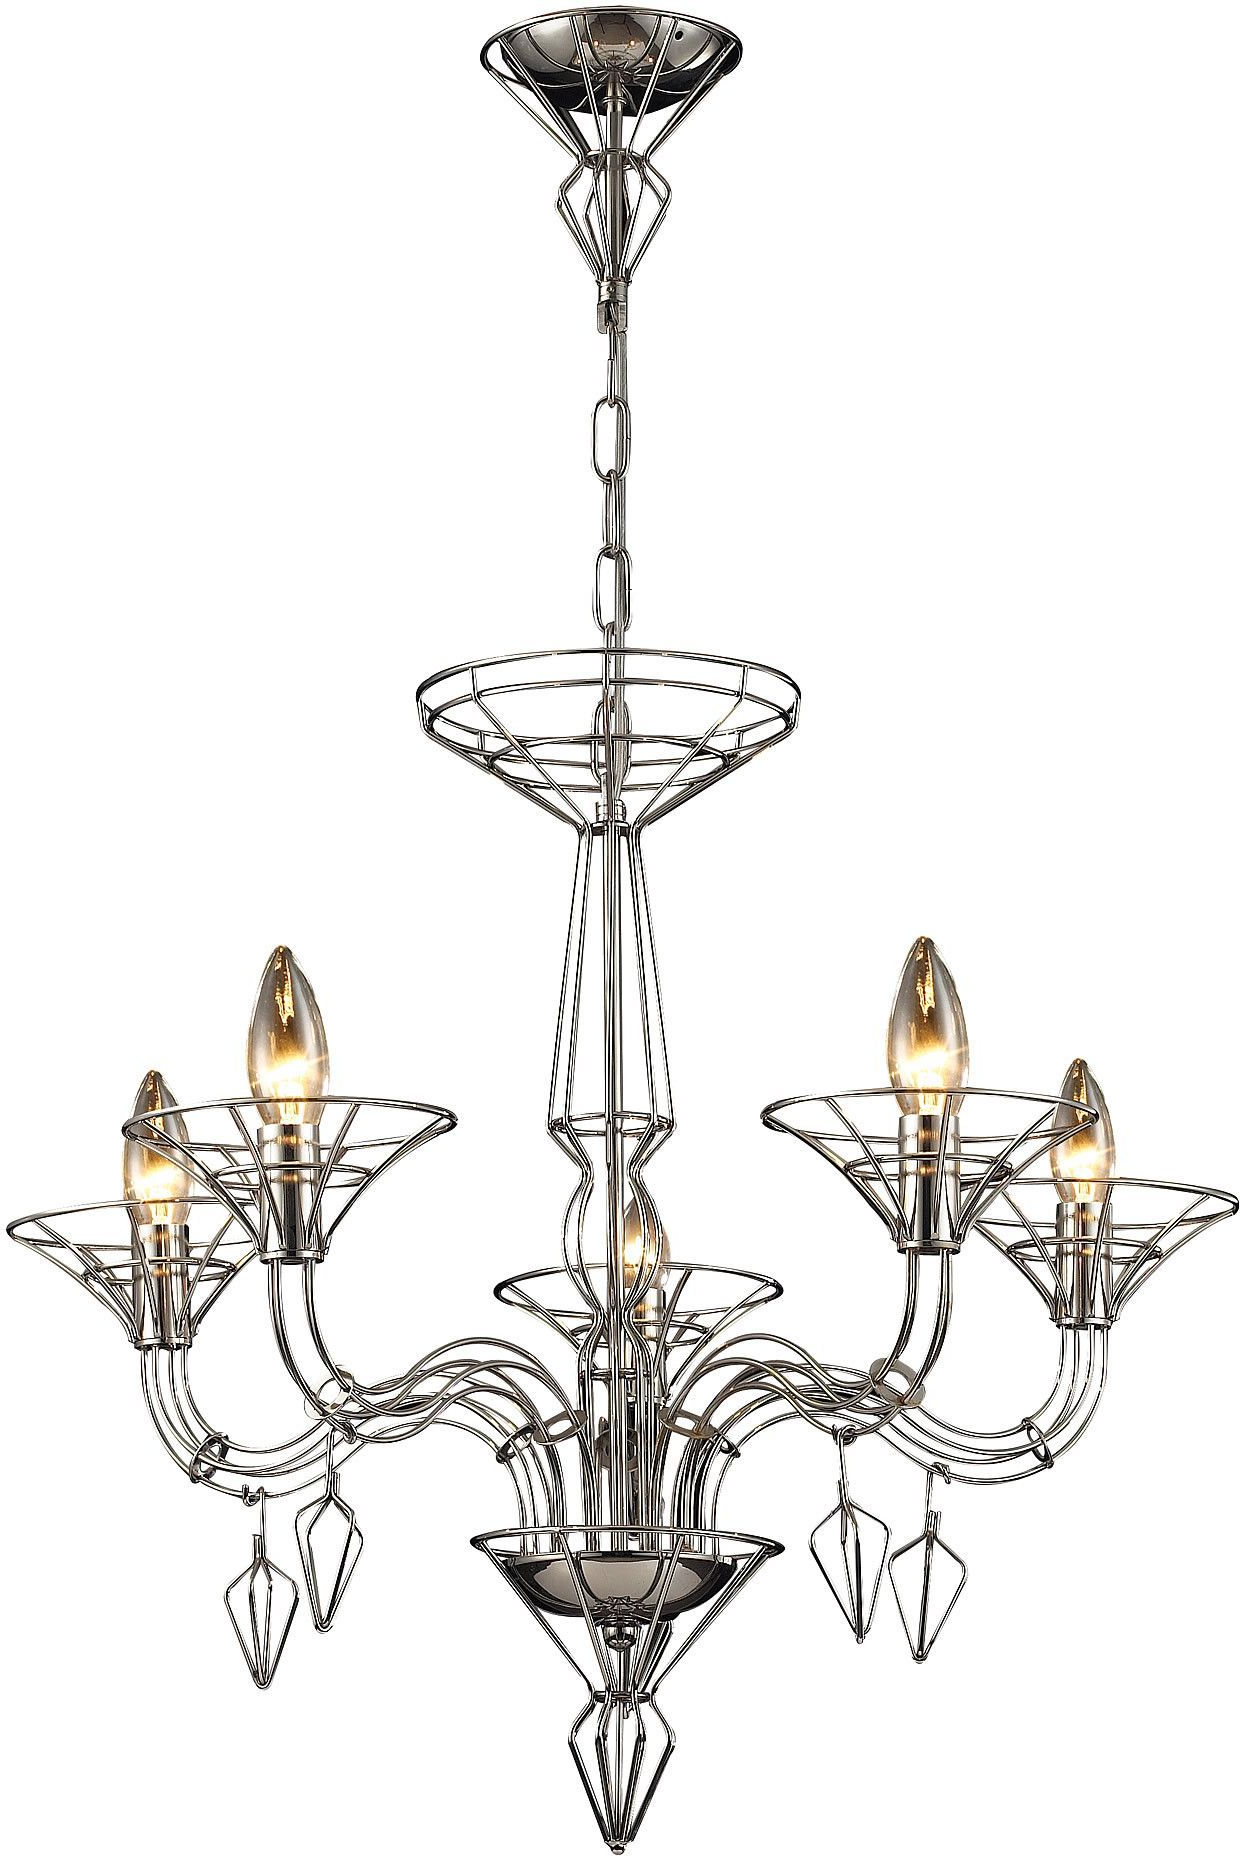 "0 016797>26""""w Couture 5 Light Chandelier Satin Nickel With With Well Known Hesse 5 Light Candle Style Chandeliers (View 1 of 20)"